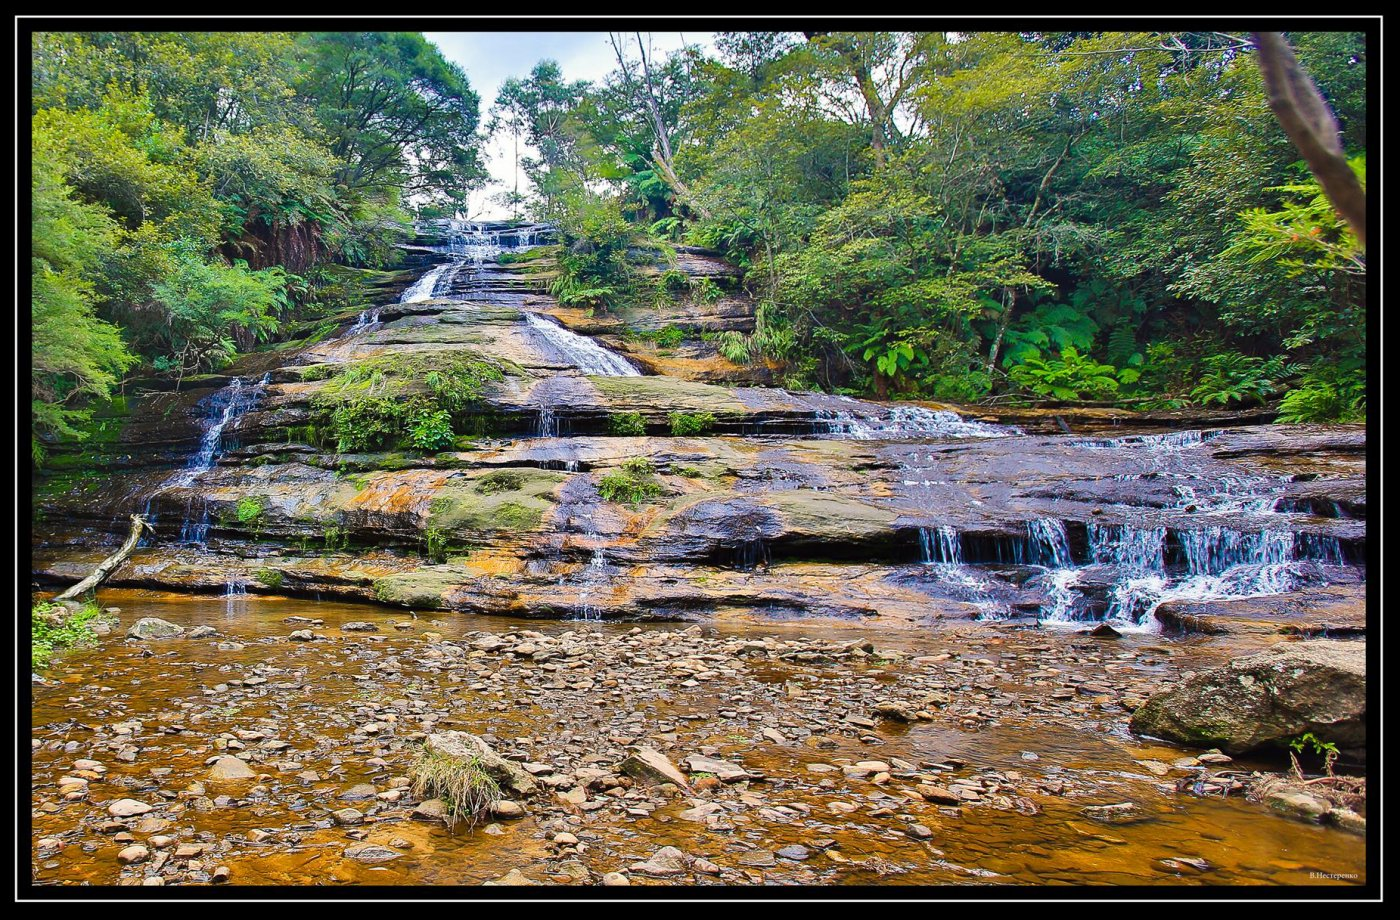 Фото 3228 - 1 (Copy).jpg. Австралия, New South Wales, Blue Mountains National Park, Hurley Heights Trail